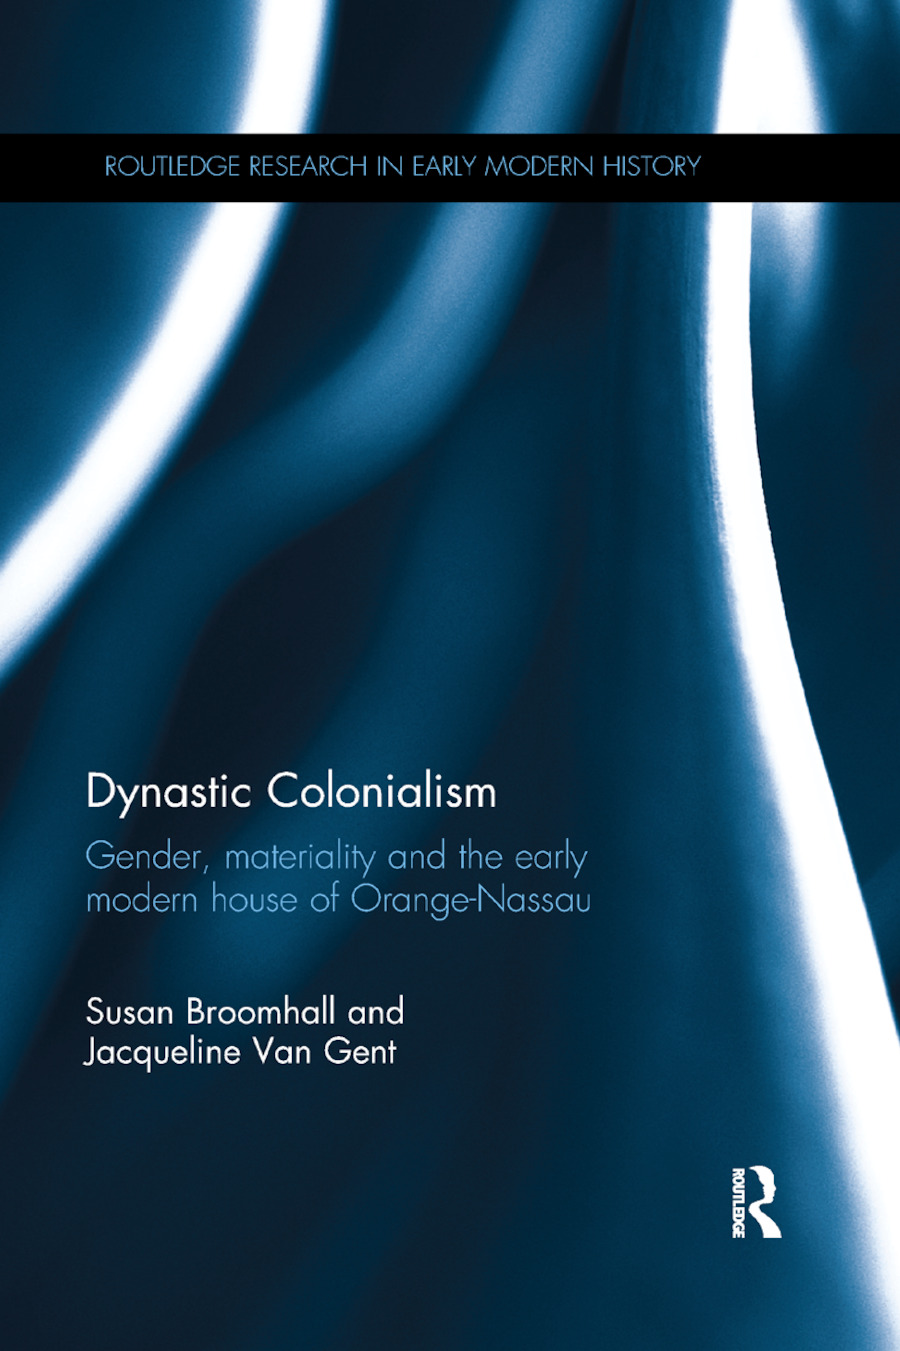 Dynastic Colonialism: Gender, Materiality and the Early Modern House of Orange-Nassau book cover